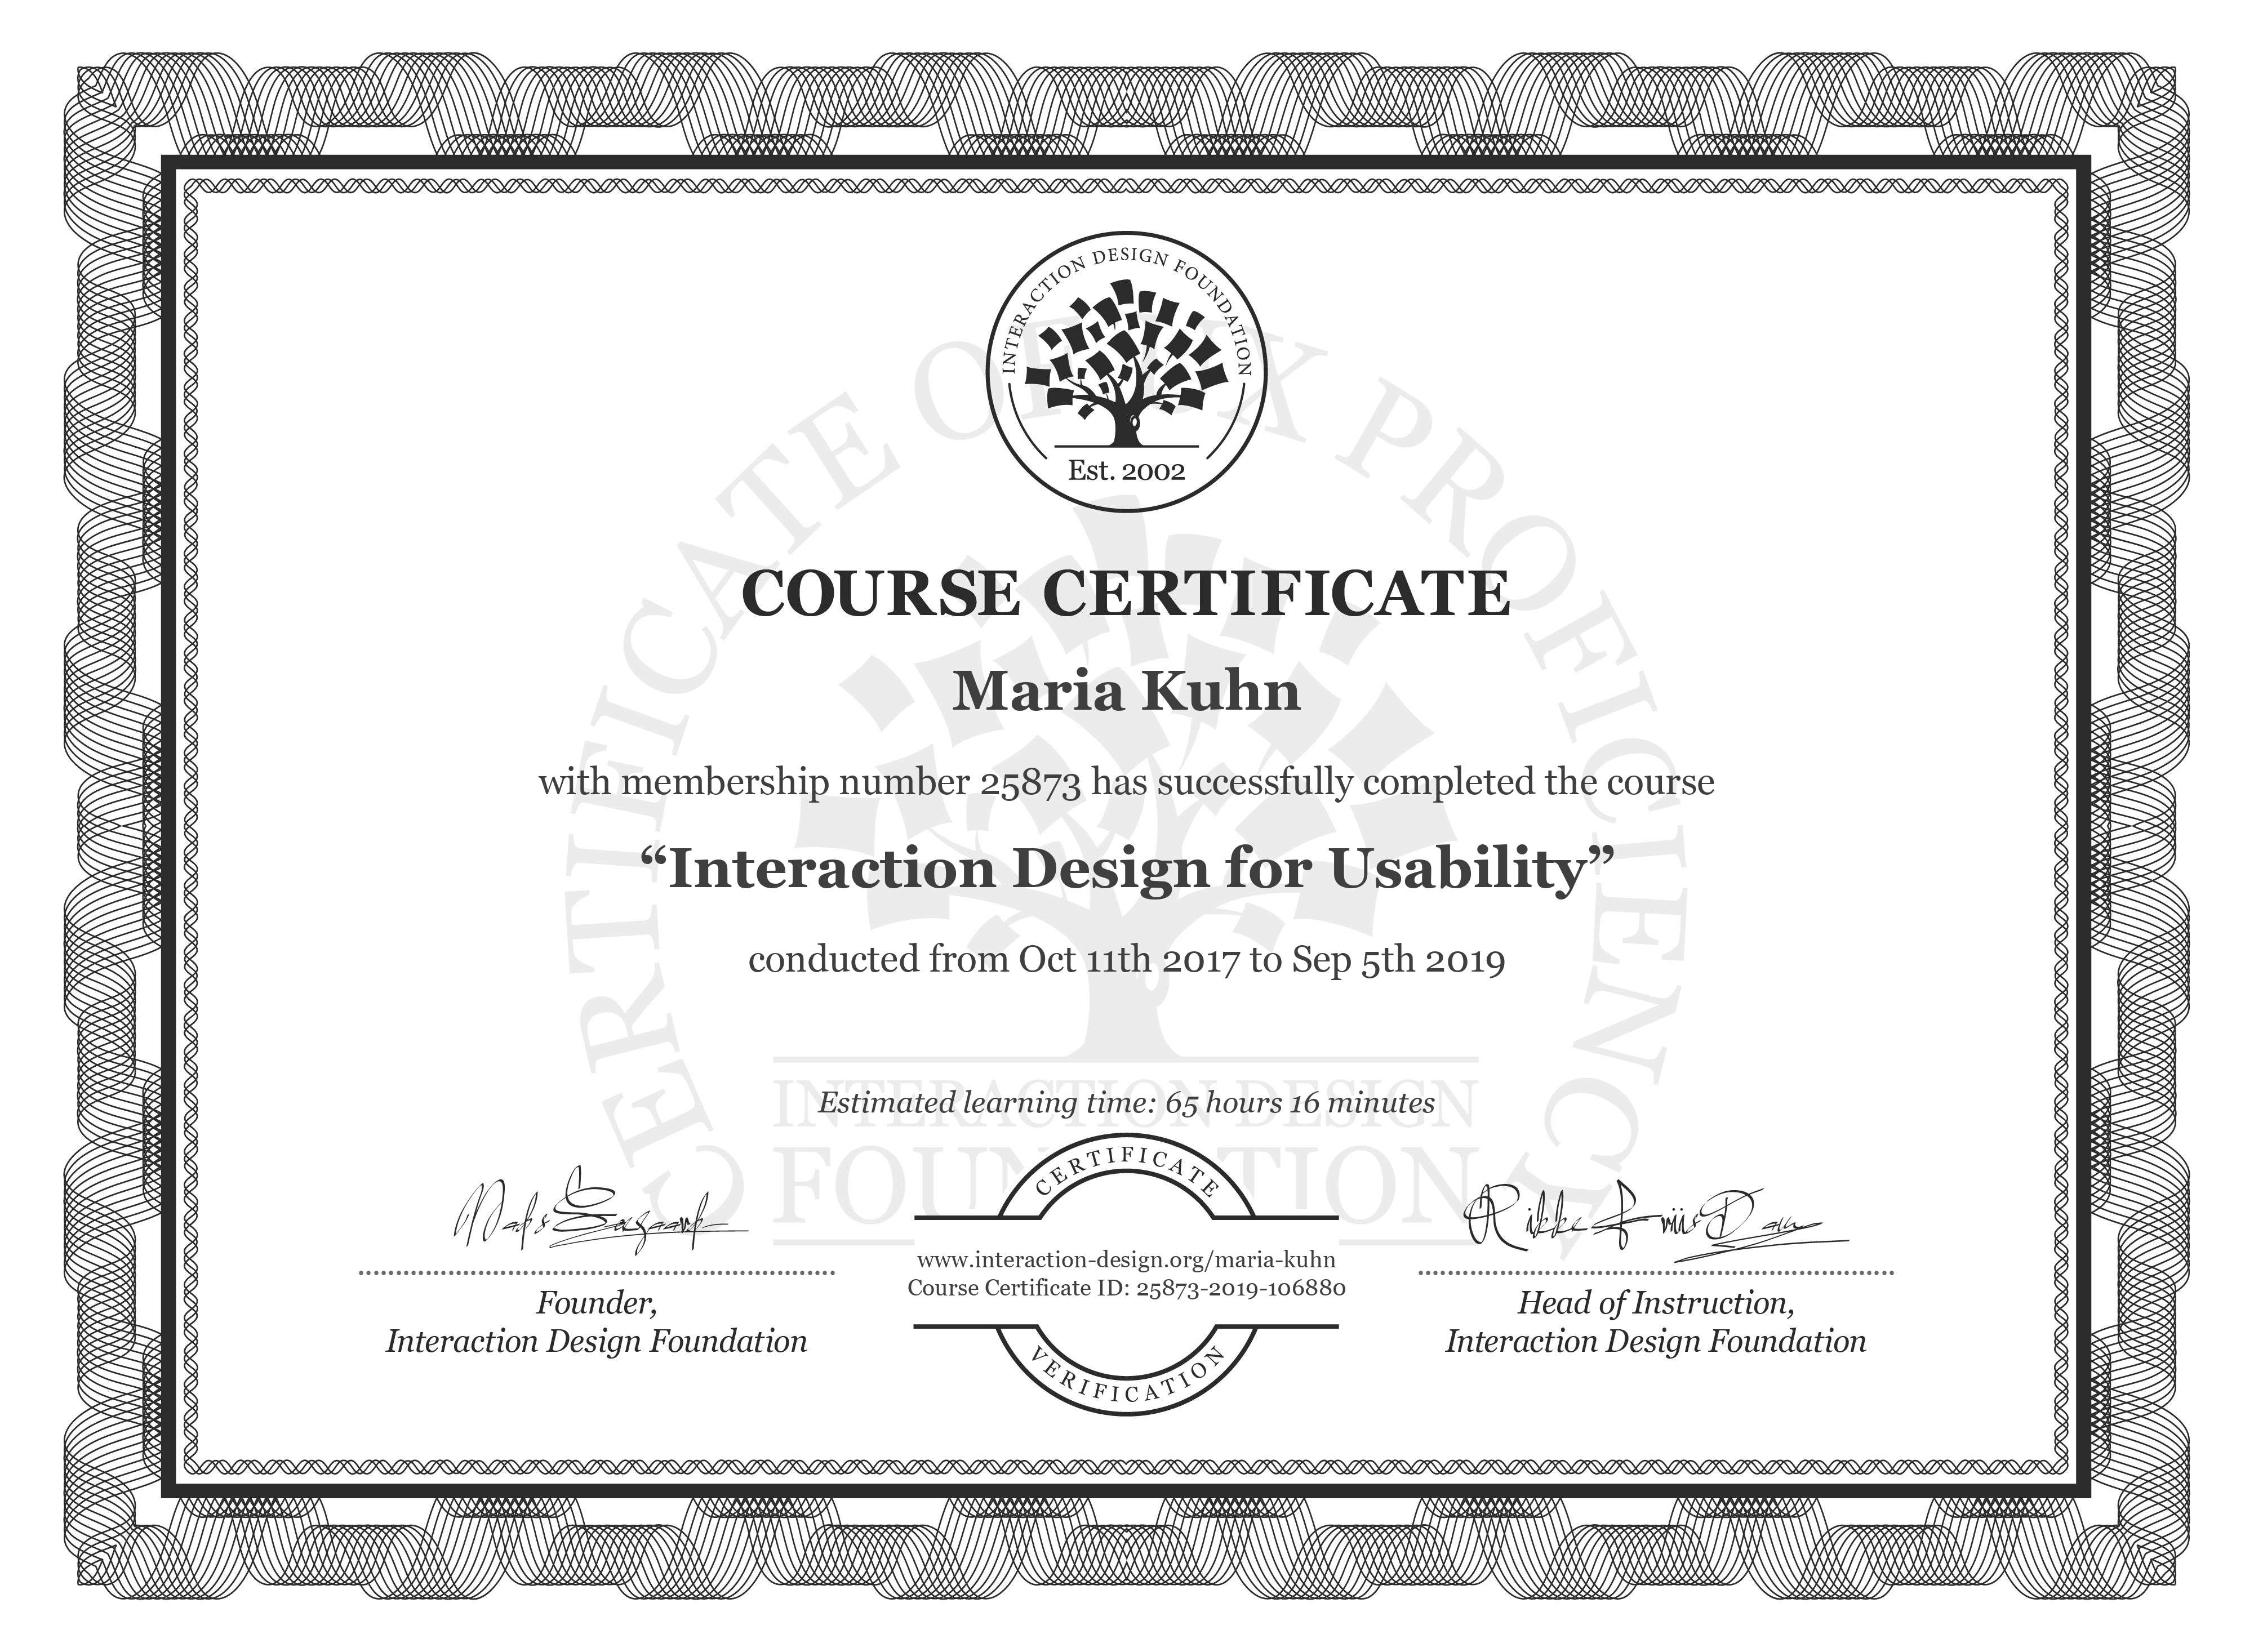 Maria Kuhn: Course Certificate - Interaction Design for Usability